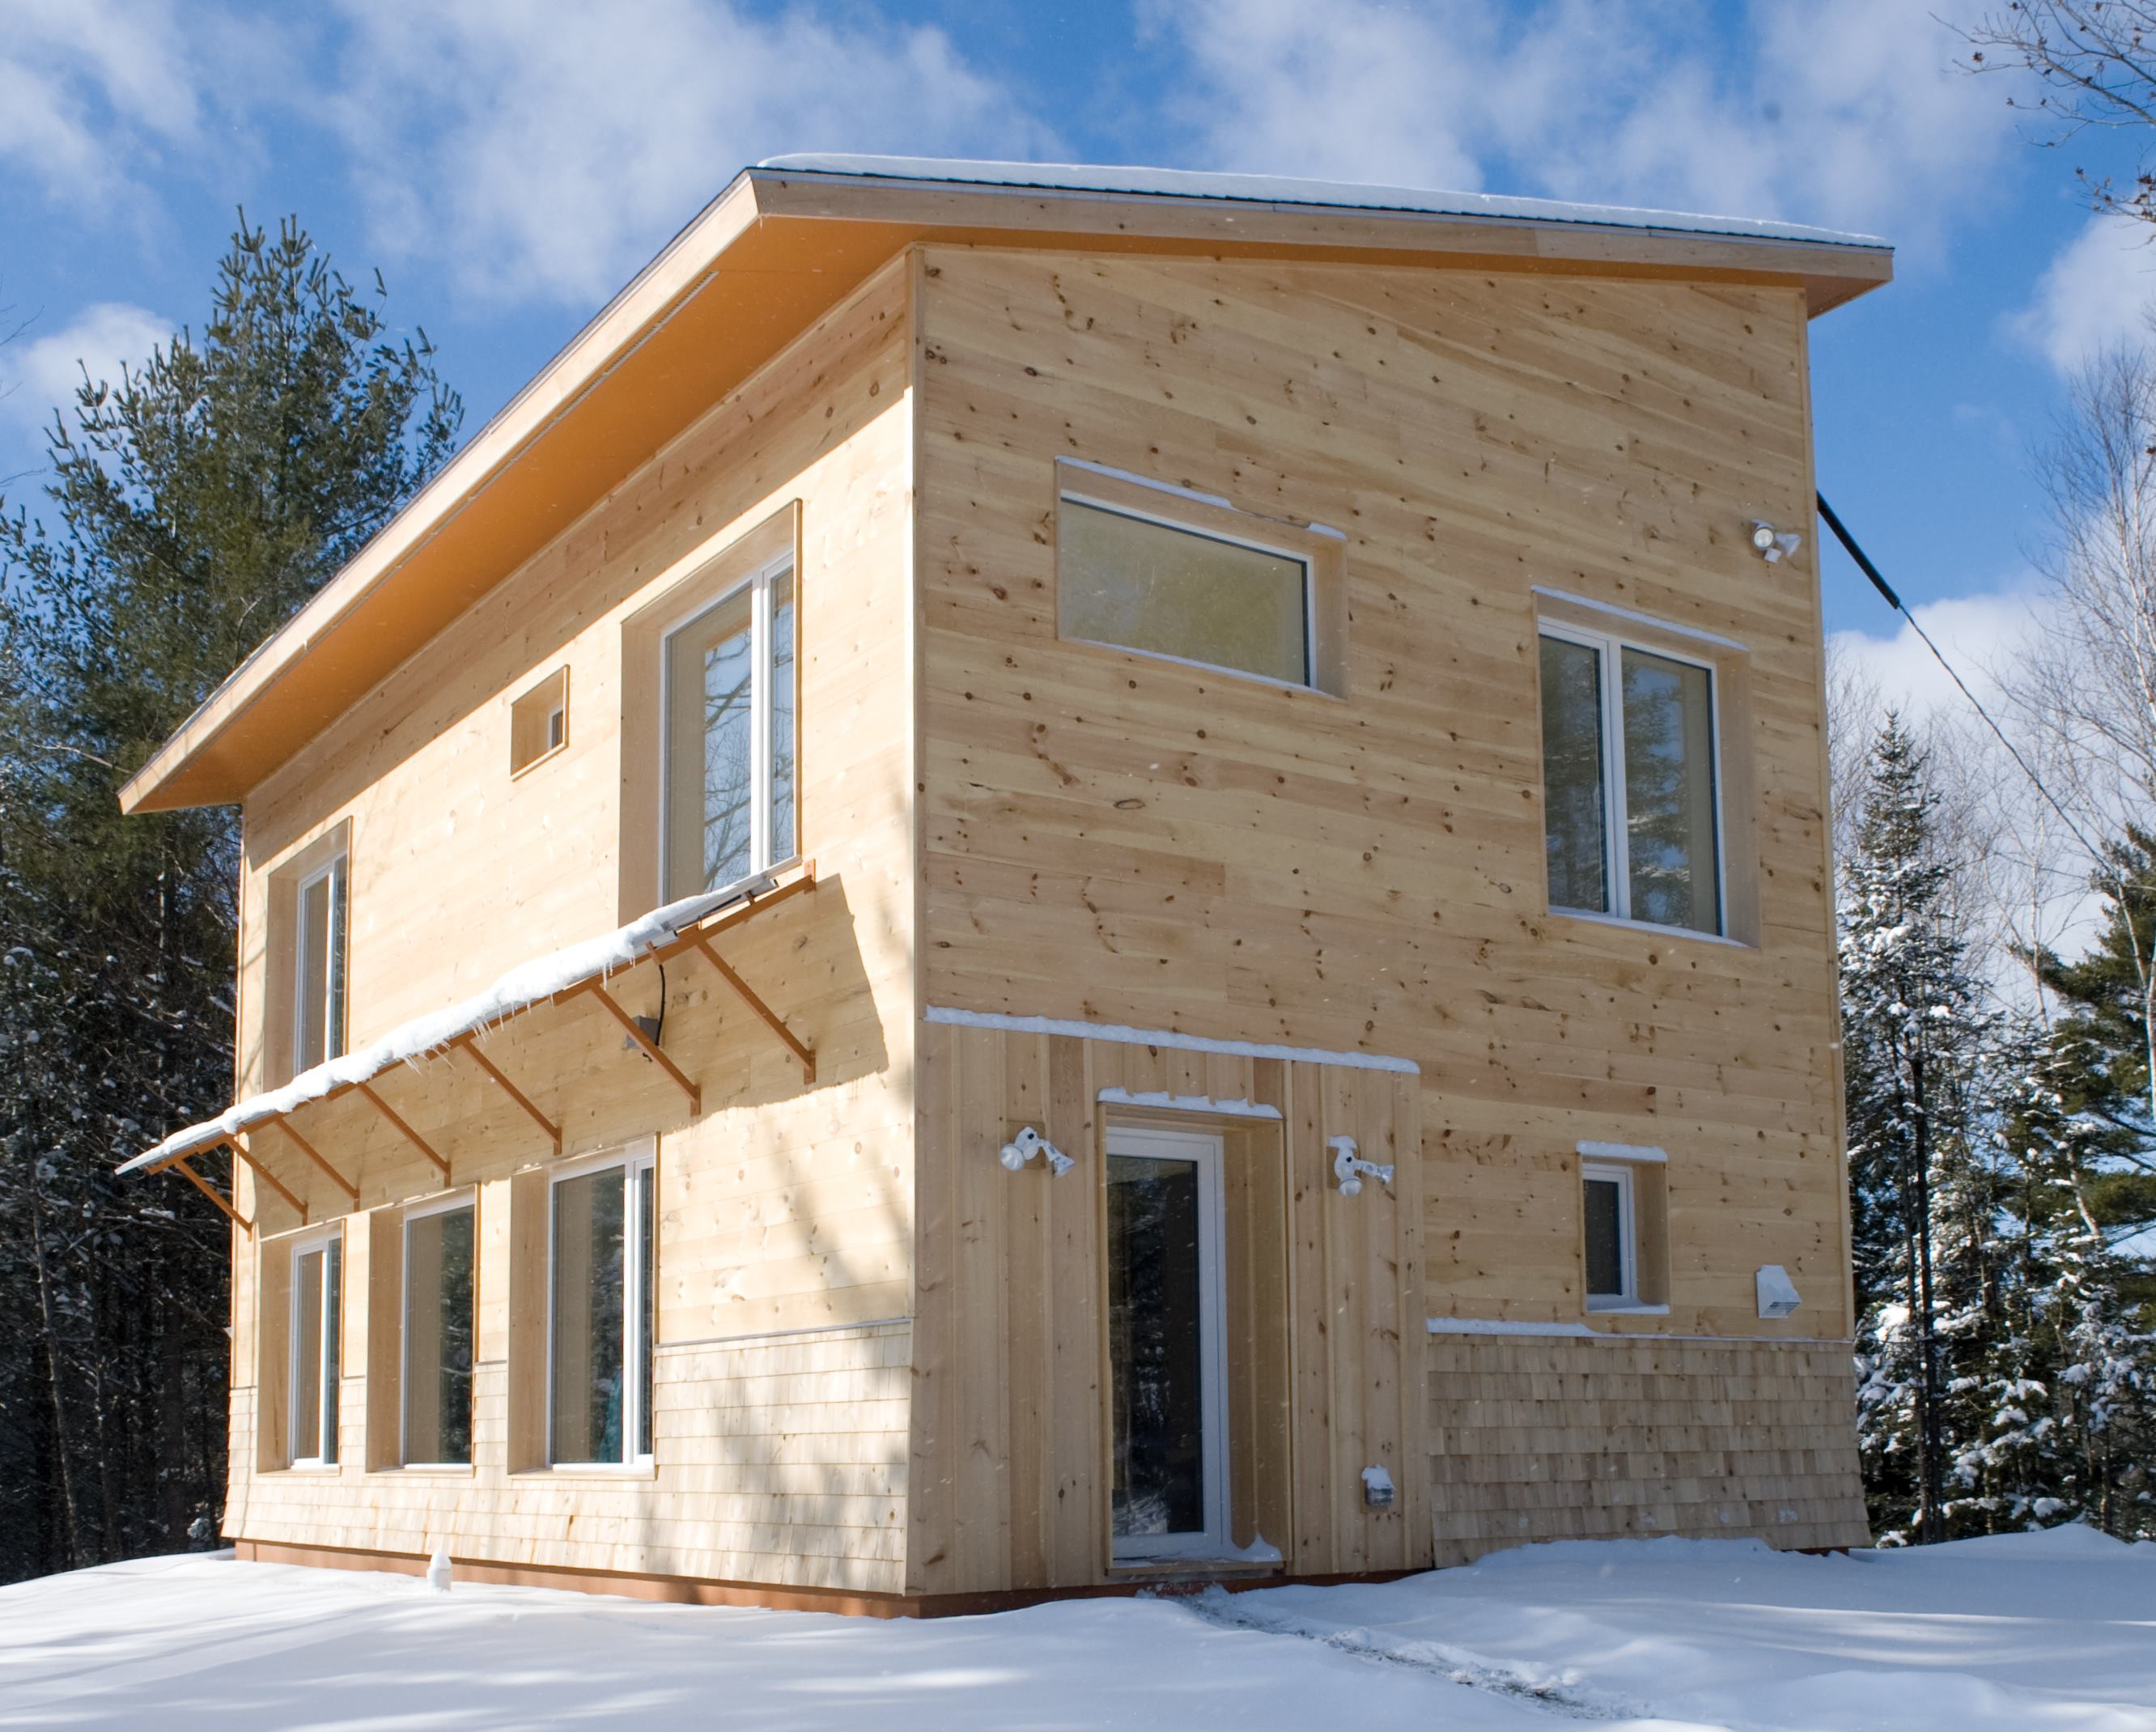 An affordable passive house part 1 airtight and super Super insulated windows